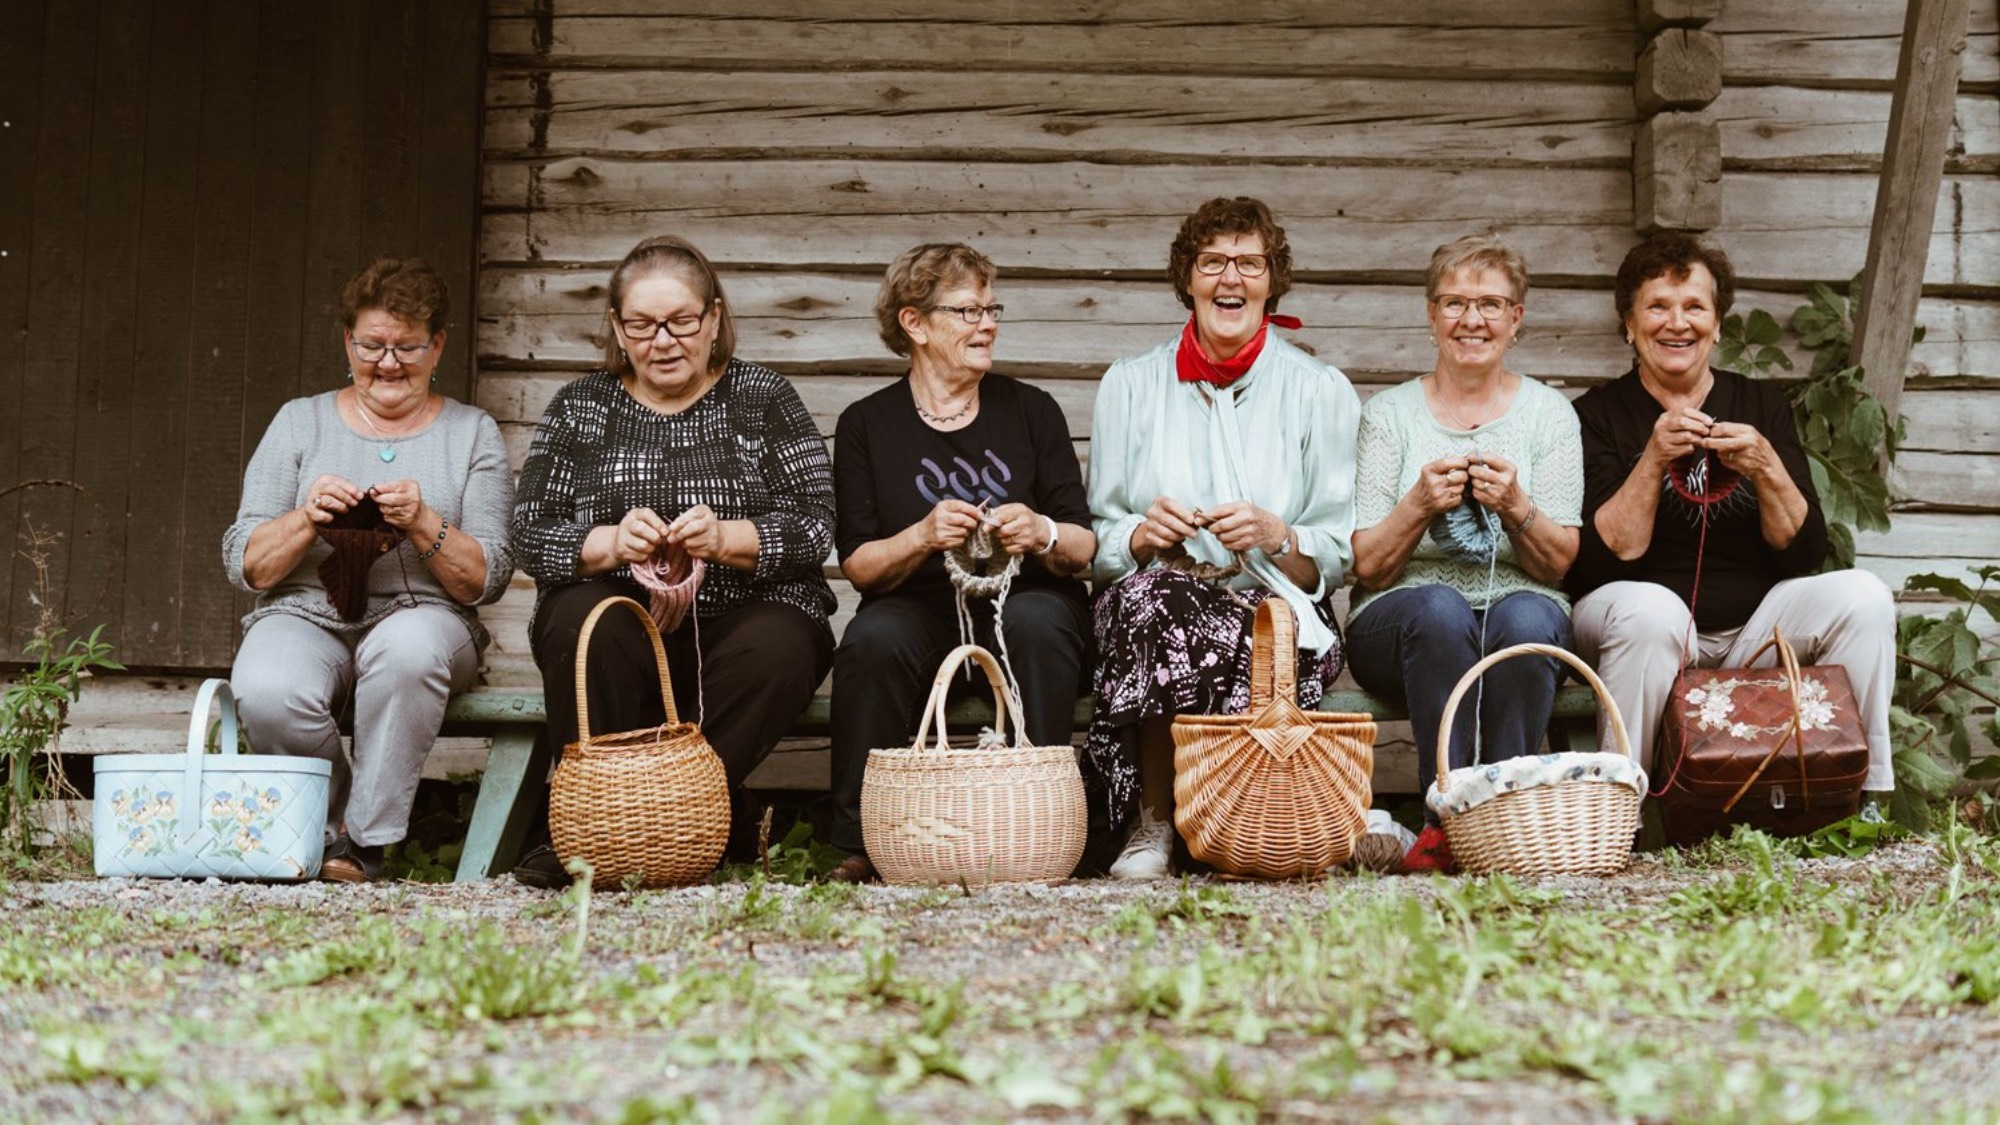 Myssyfarmi grannies smiling and knitting in front of a timber house